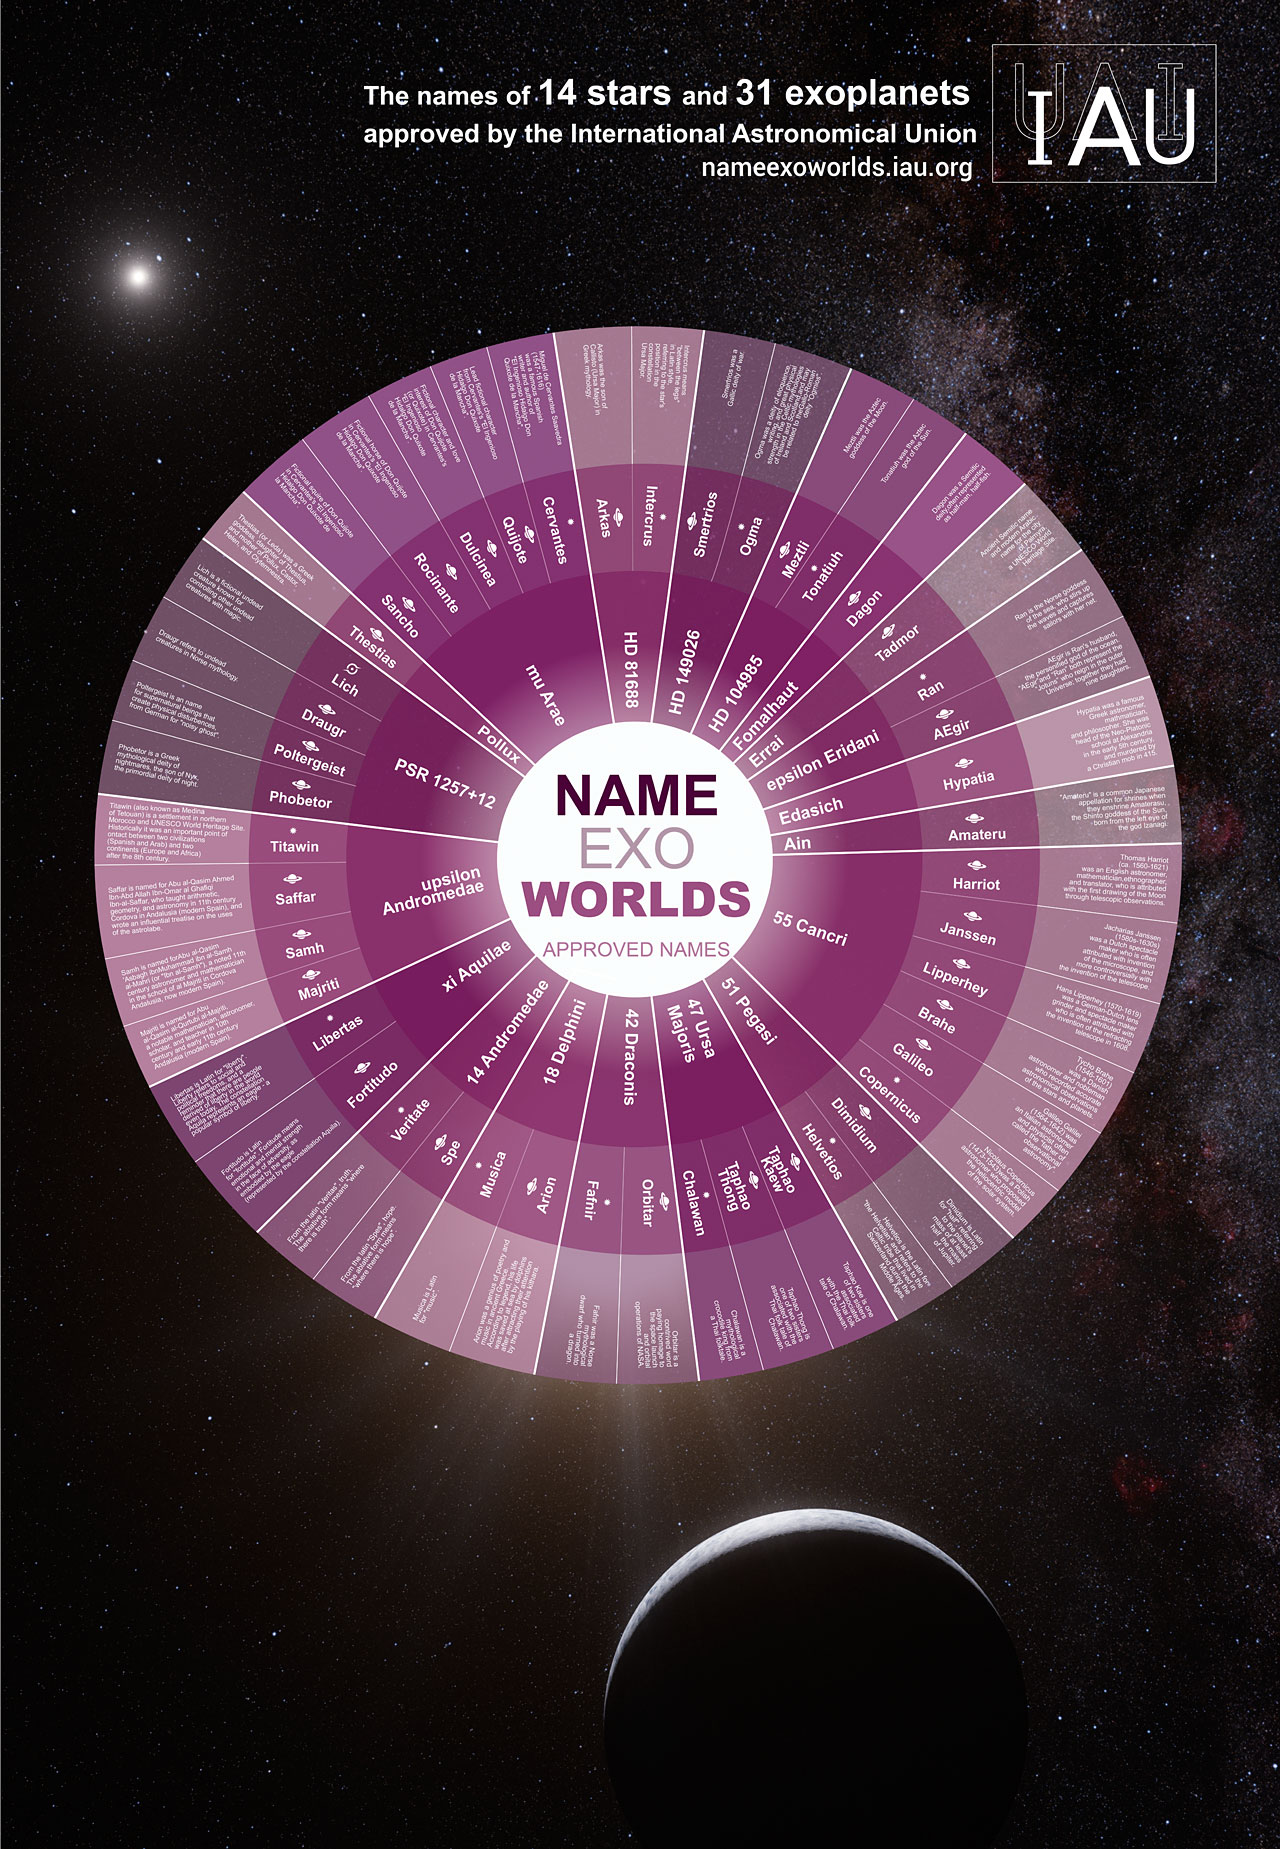 final results of nameexoworlds public vote released